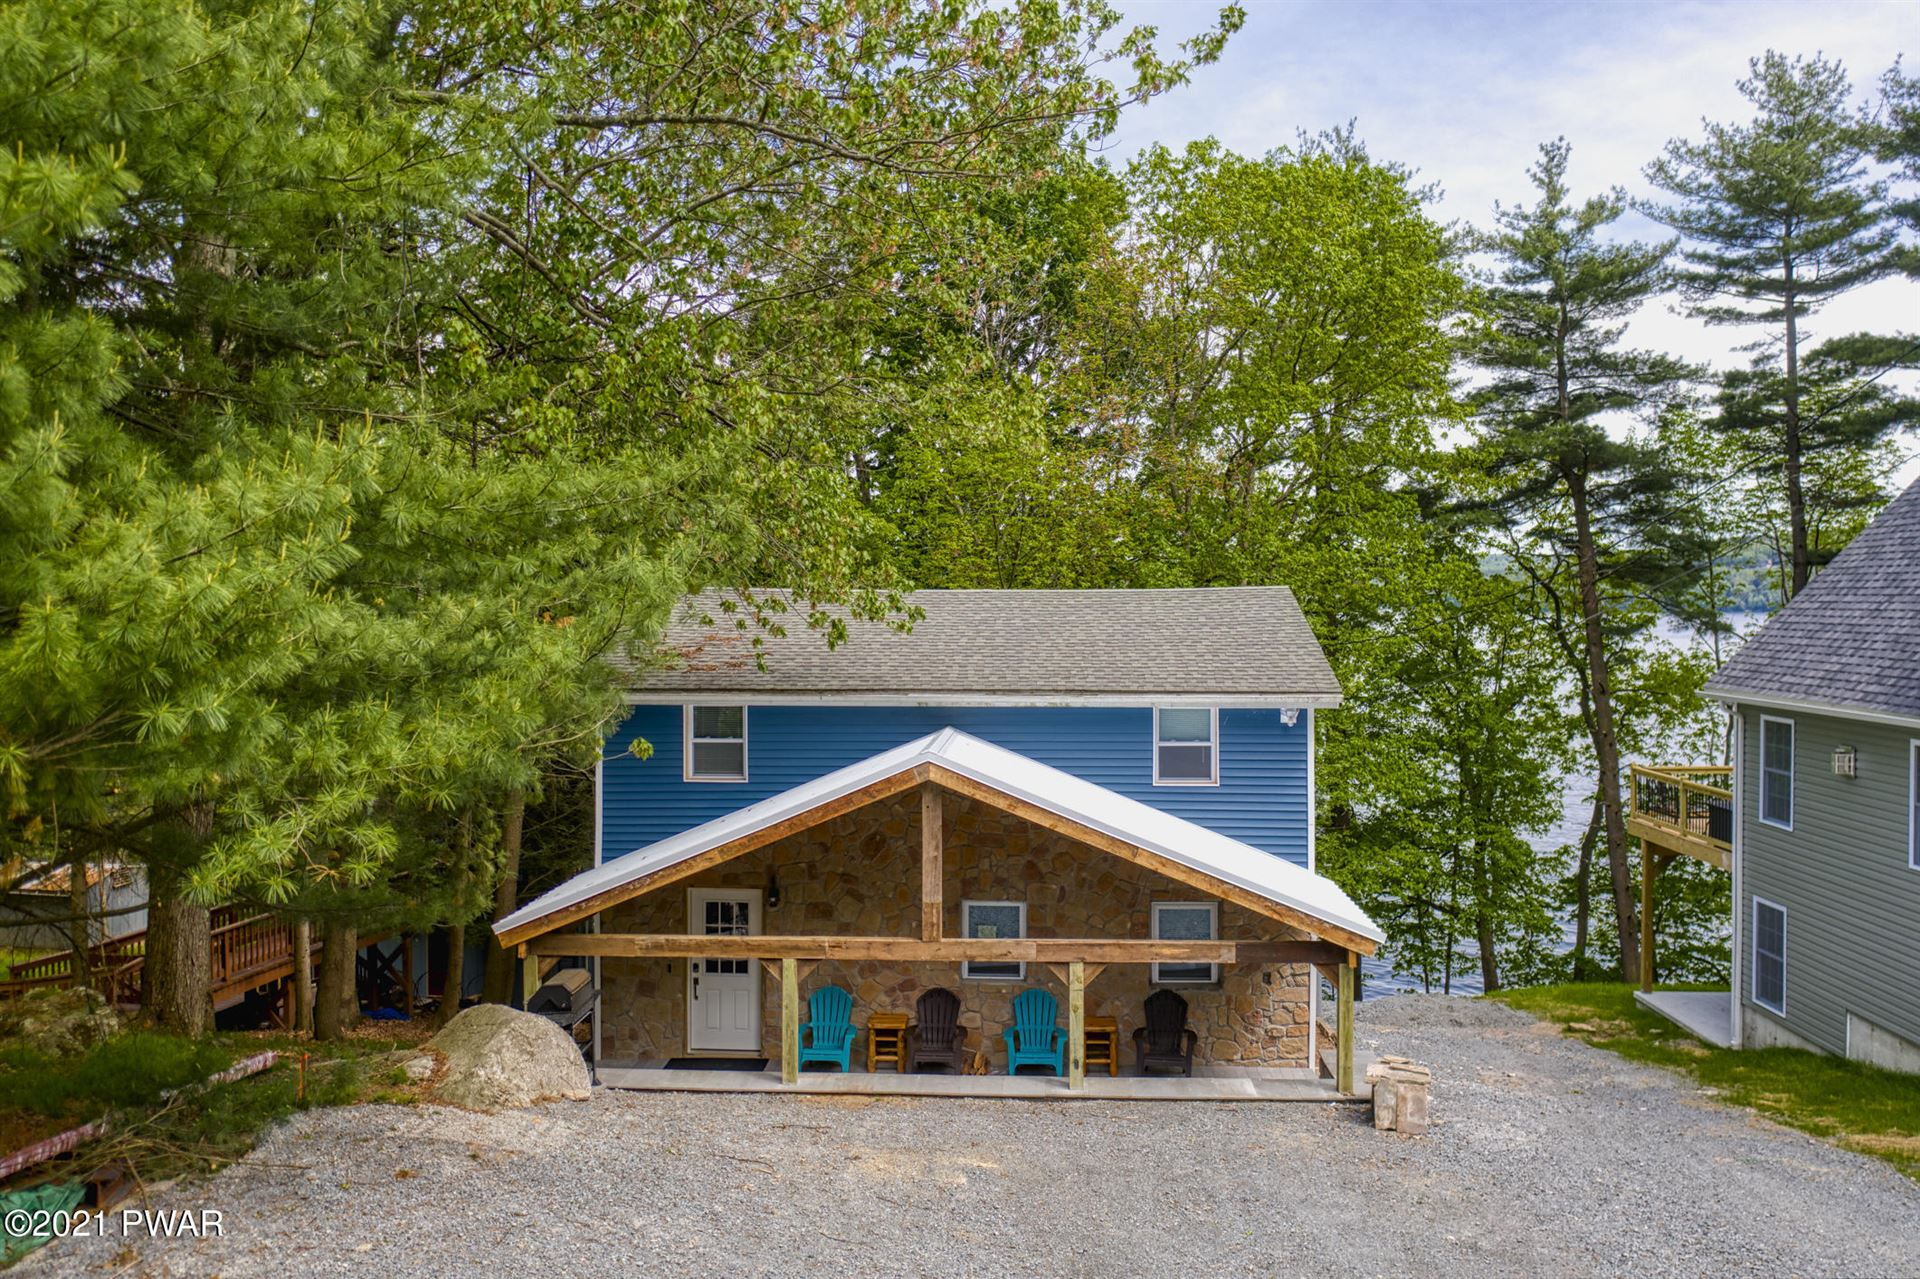 Photo of 390 Lakeshore Dr, Lakeville, PA 18438 (MLS # 21-762)